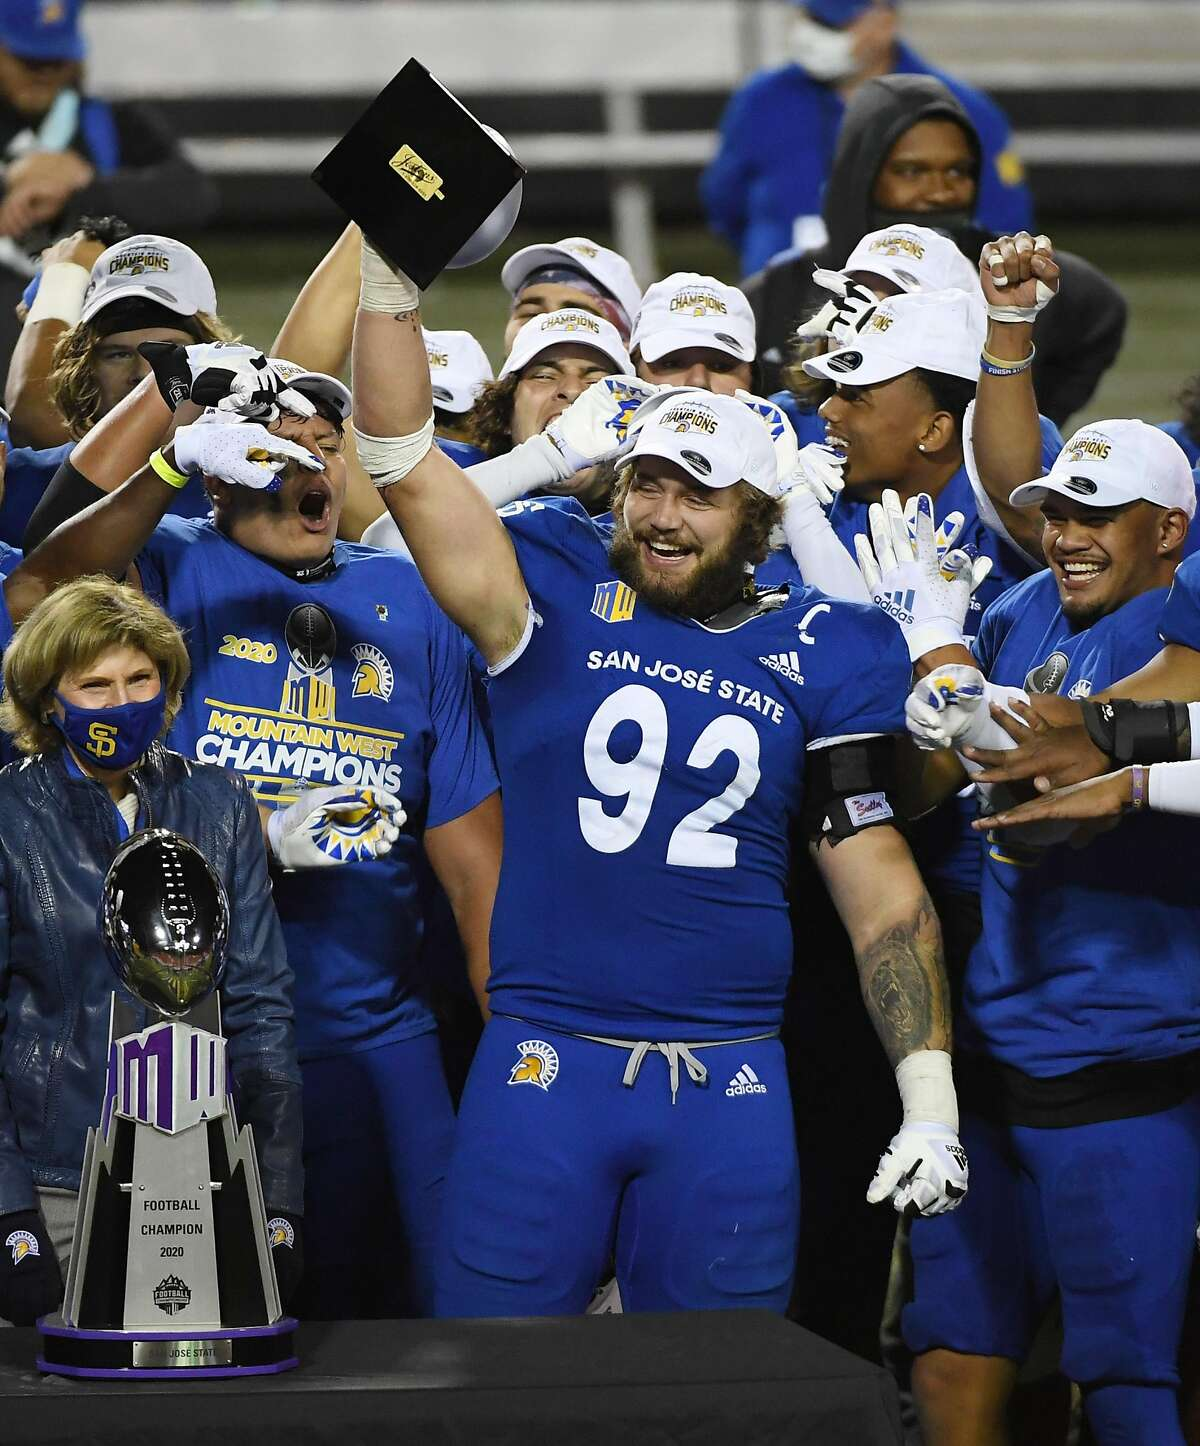 LAS VEGAS, NEVADA - DECEMBER 19: Defensive lineman Cade Hall #92 of the San Jose State Spartans lifts up the the Mountain West Championship game defensive MVP trophy after the team defeated the Boise State Broncos 34-20 to win the Mountain West Football Championship at Sam Boyd Stadium on December 19, 2020 in Las Vegas, Nevada. (Photo by Ethan Miller/Getty Images)